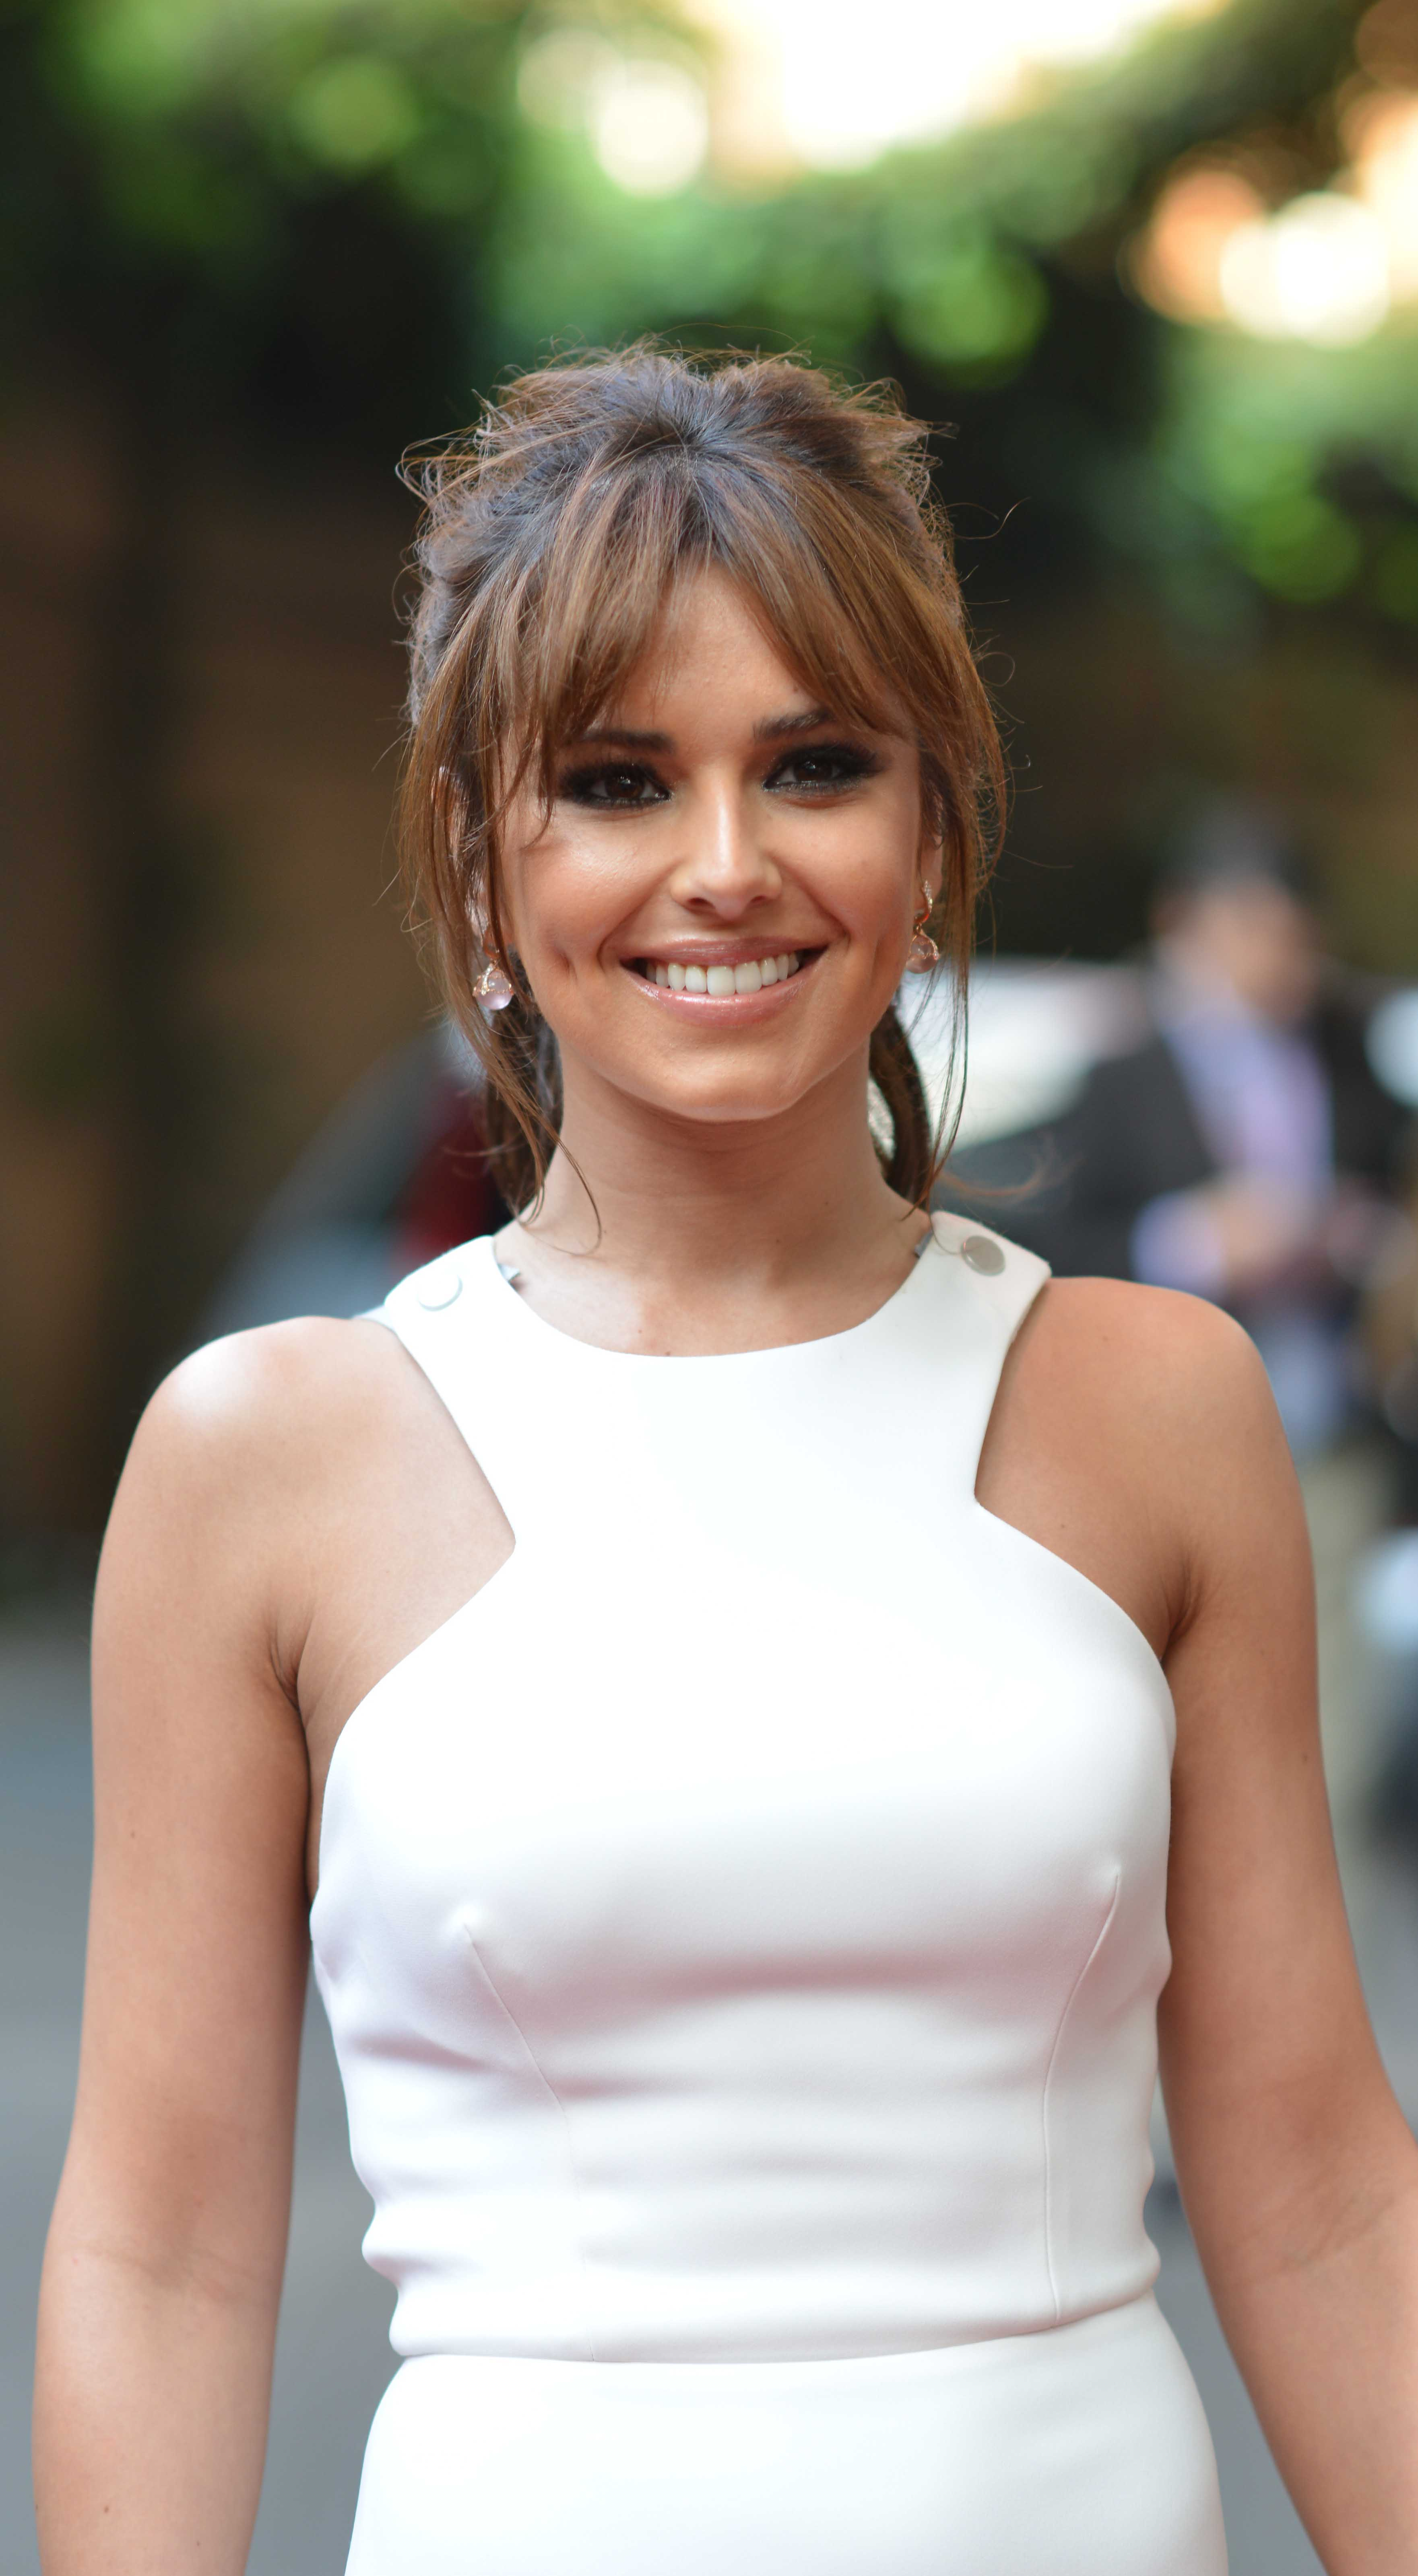 Cheryl Cole (Tweedy) photo 488 of 678 pics, wallpaper ... Cheryl Cole